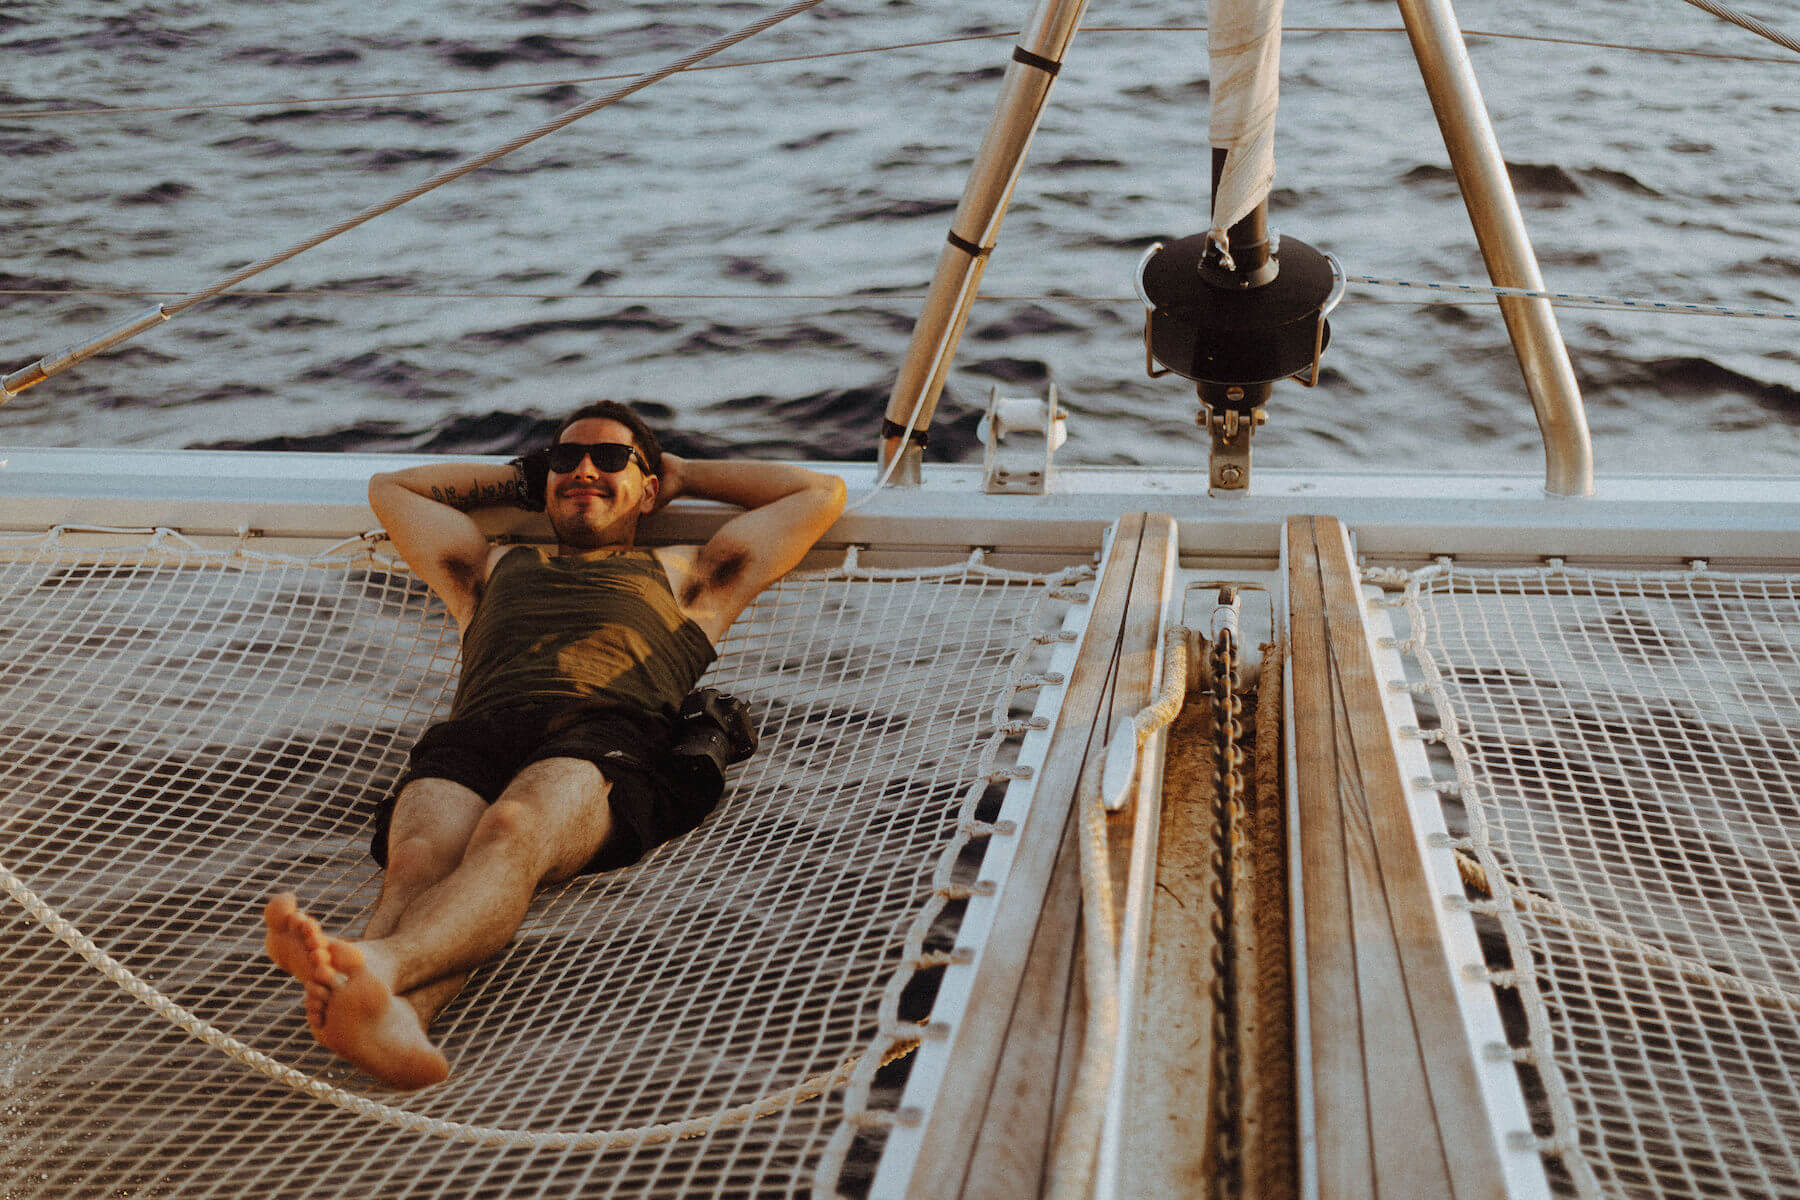 Man smiling and lounging on a boat in Santorini, Greece